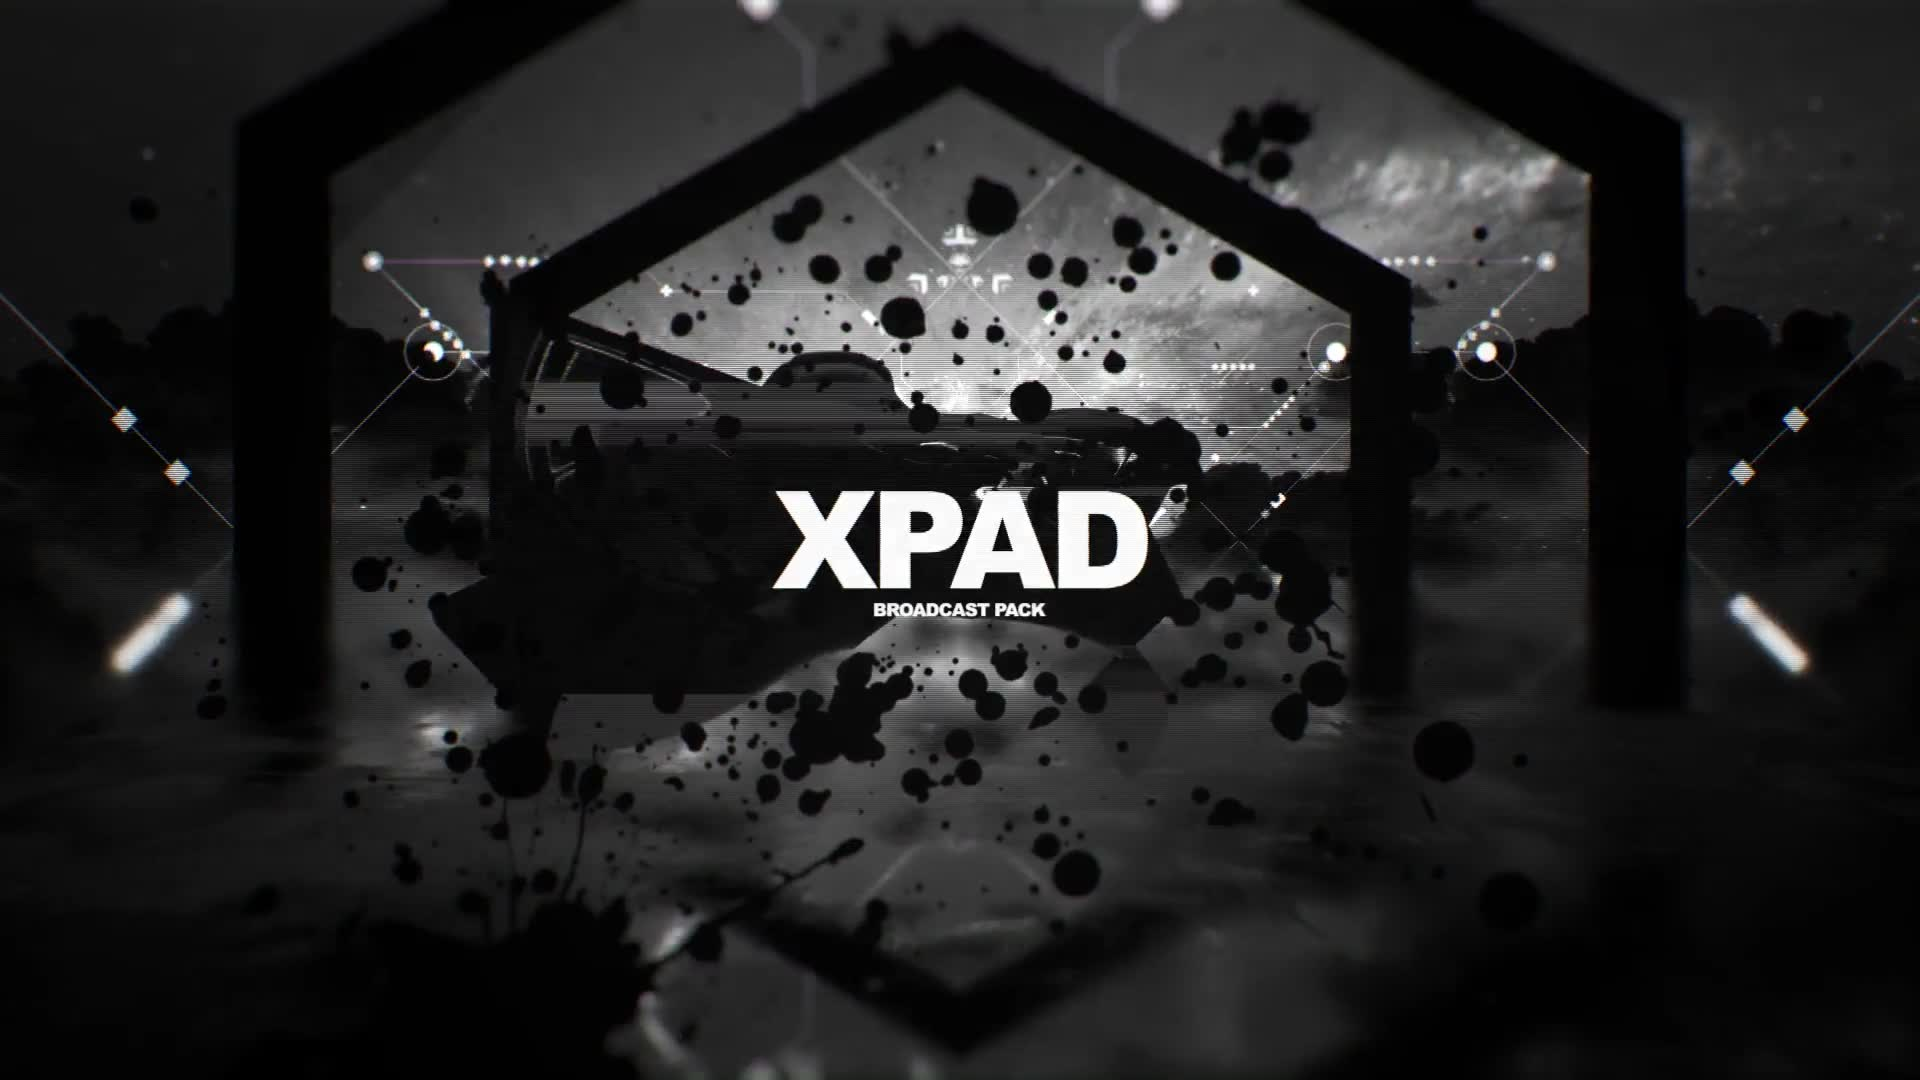 XPaD (Broadcast Pack) - Download Videohive 21853357